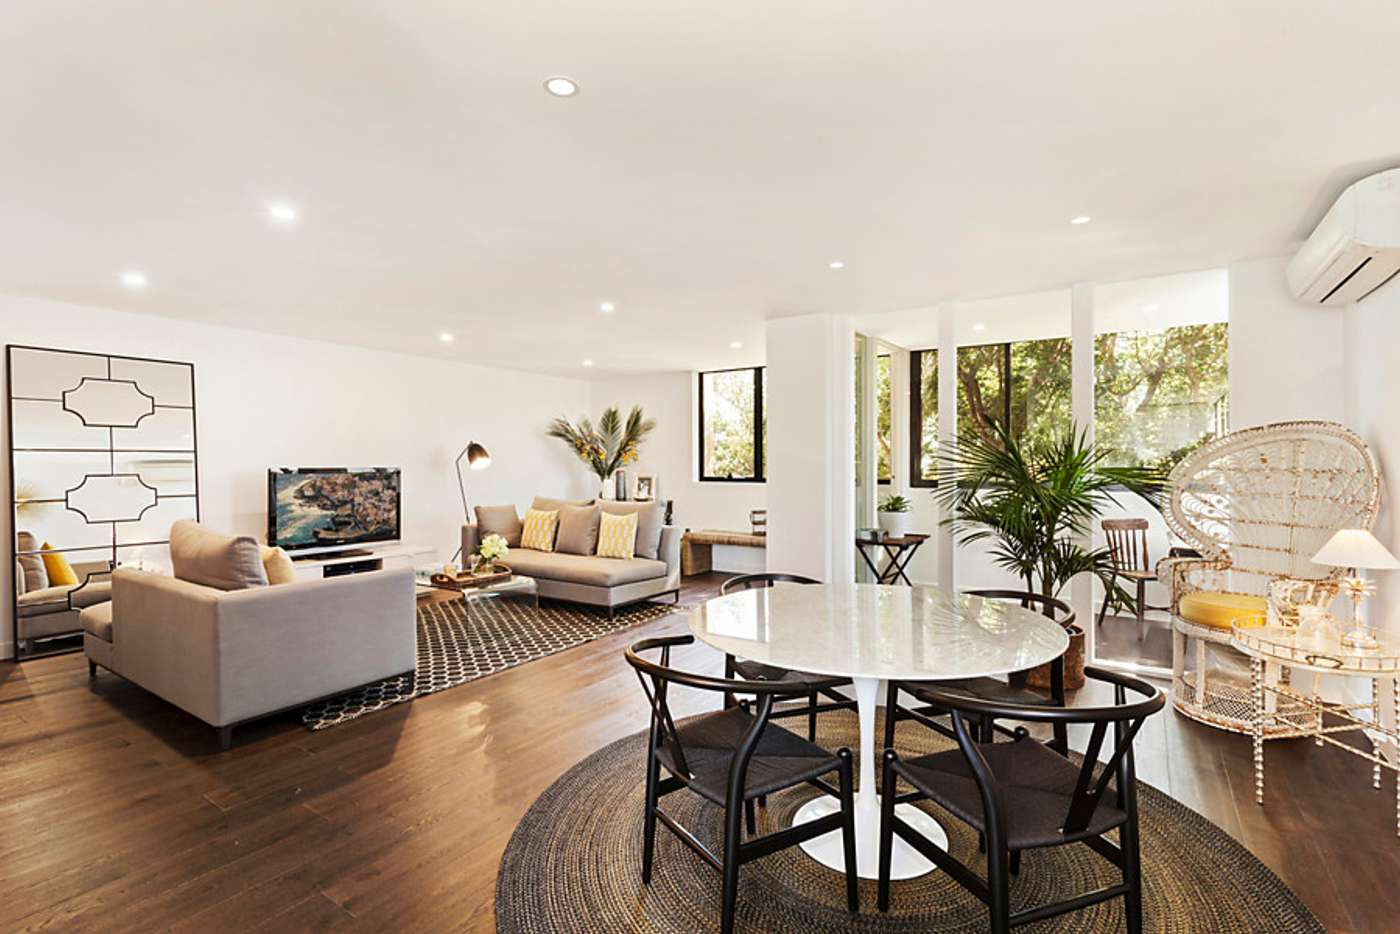 Main view of Homely apartment listing, 12/4 Sydney Street, Prahran VIC 3181